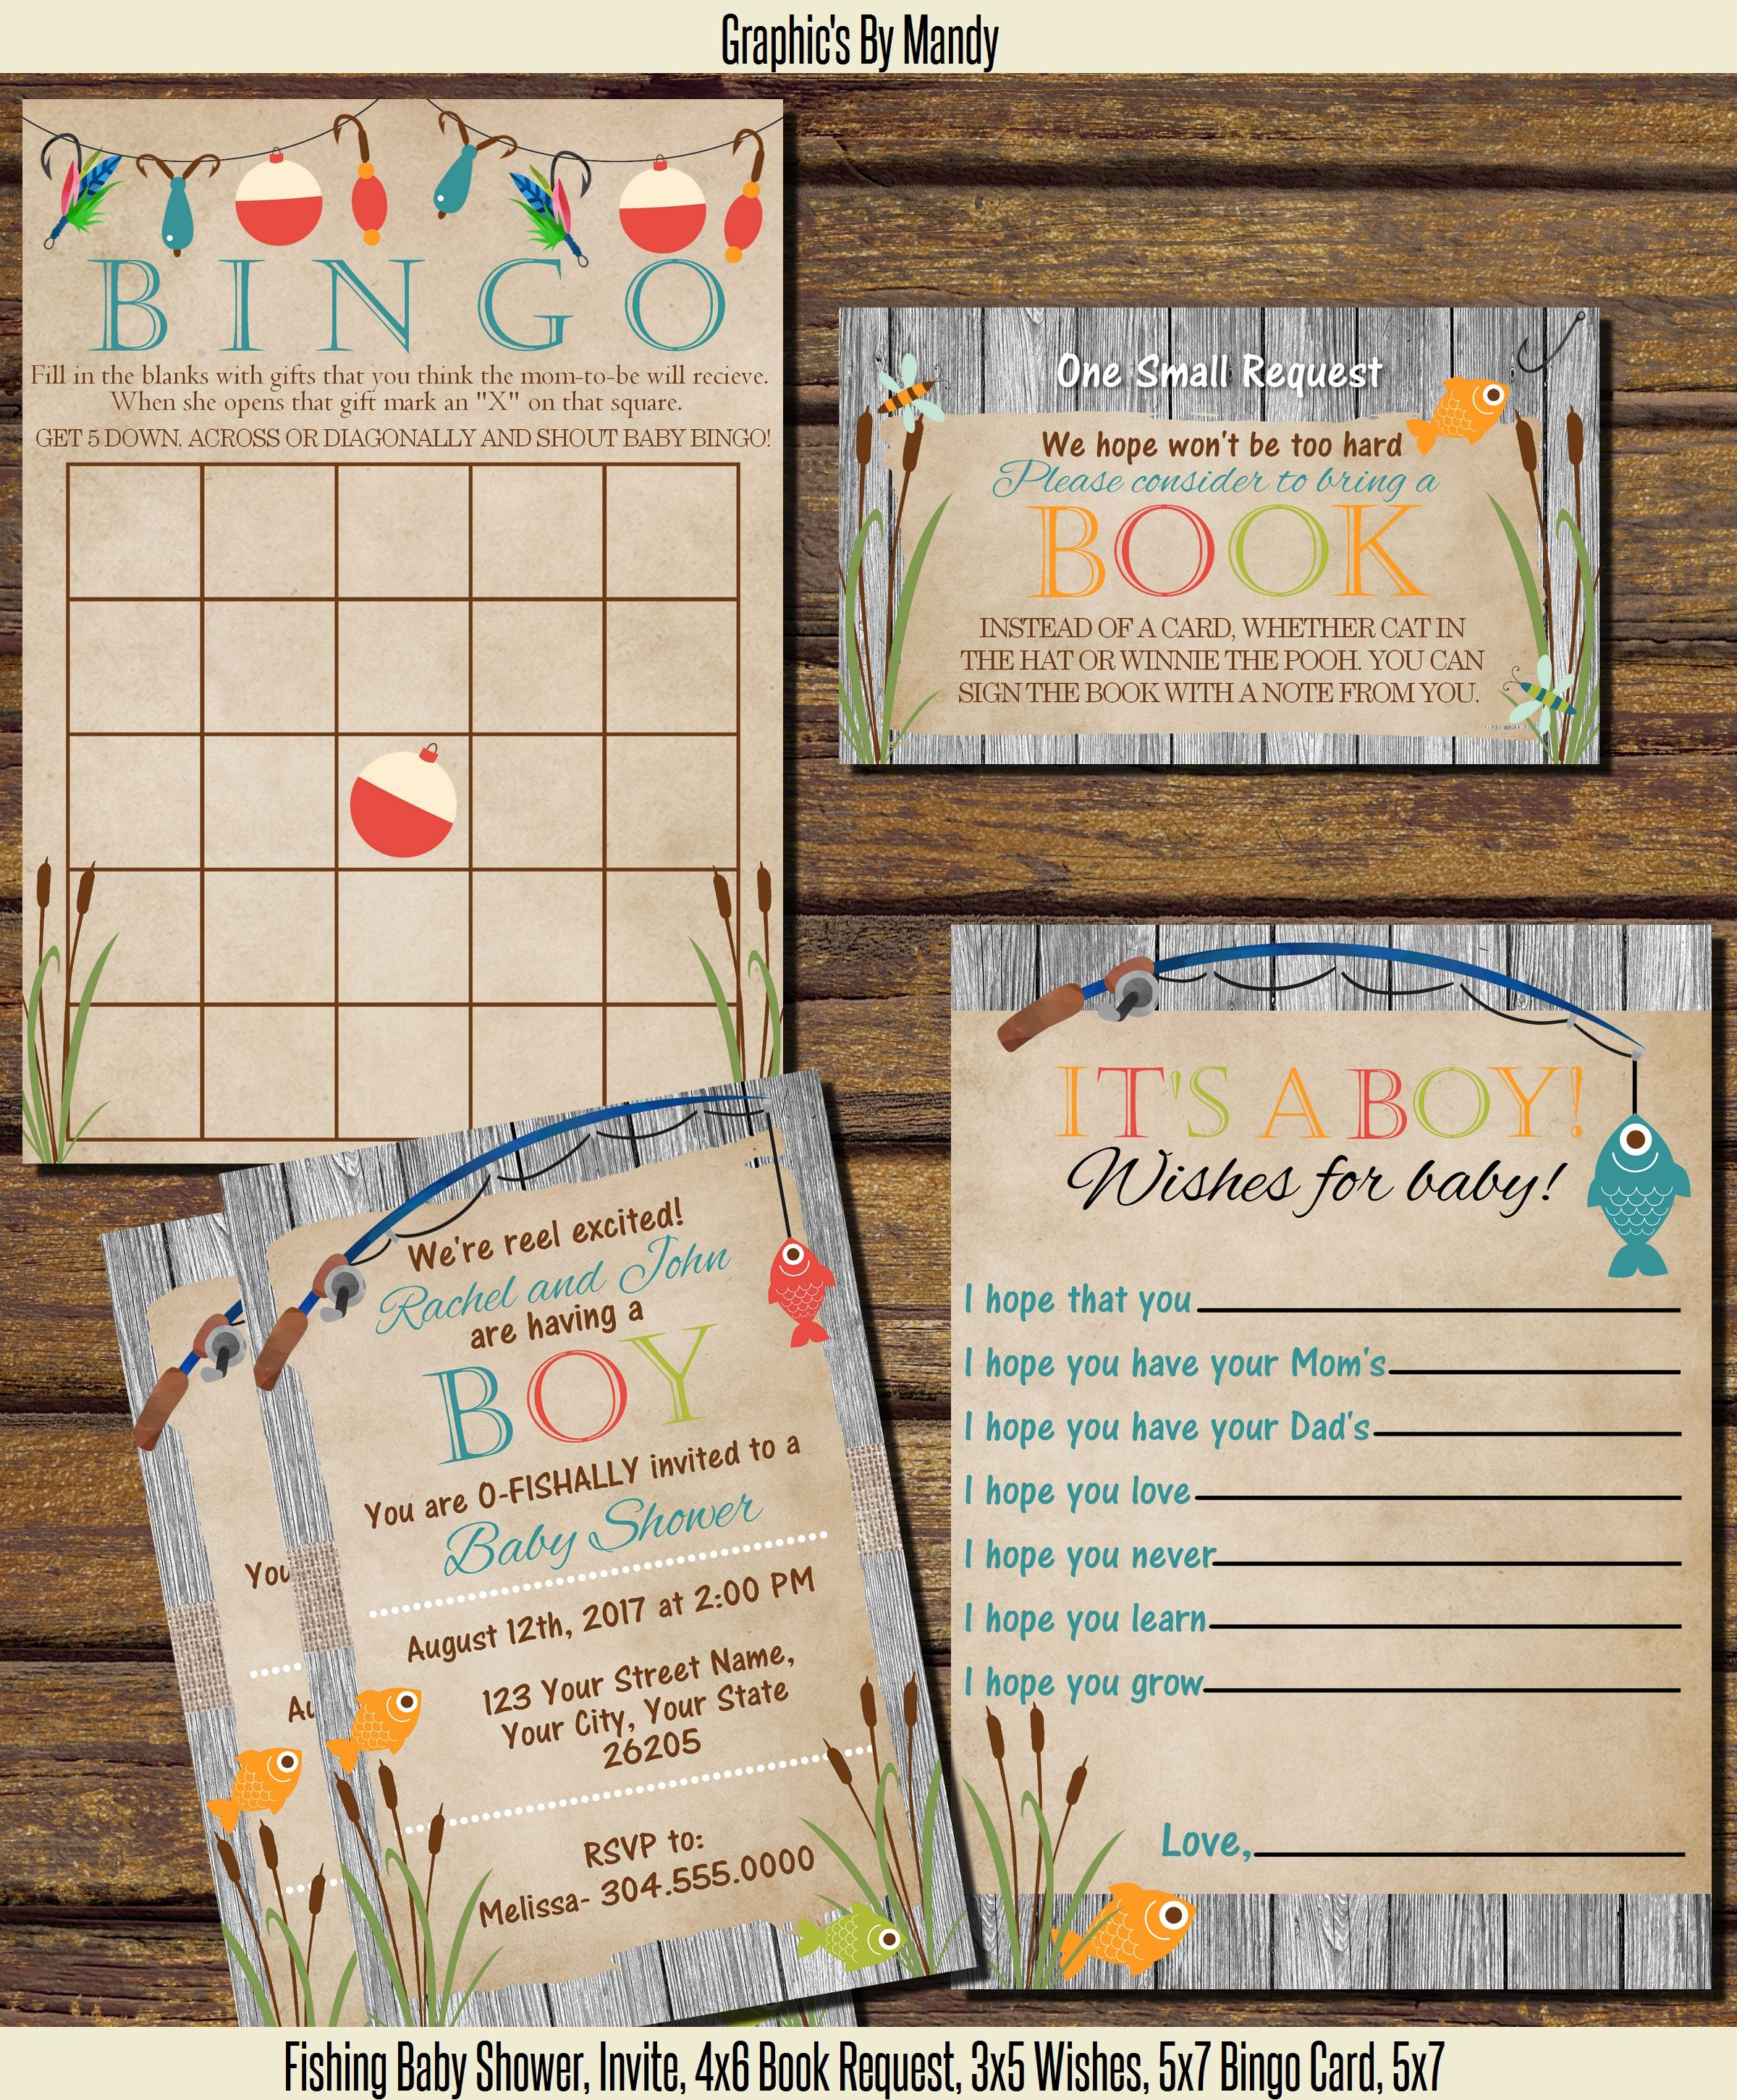 Gone Fishing Baby Shower! Invitation, 4x6 Bingo Card, 5x7, Wishes For Baby